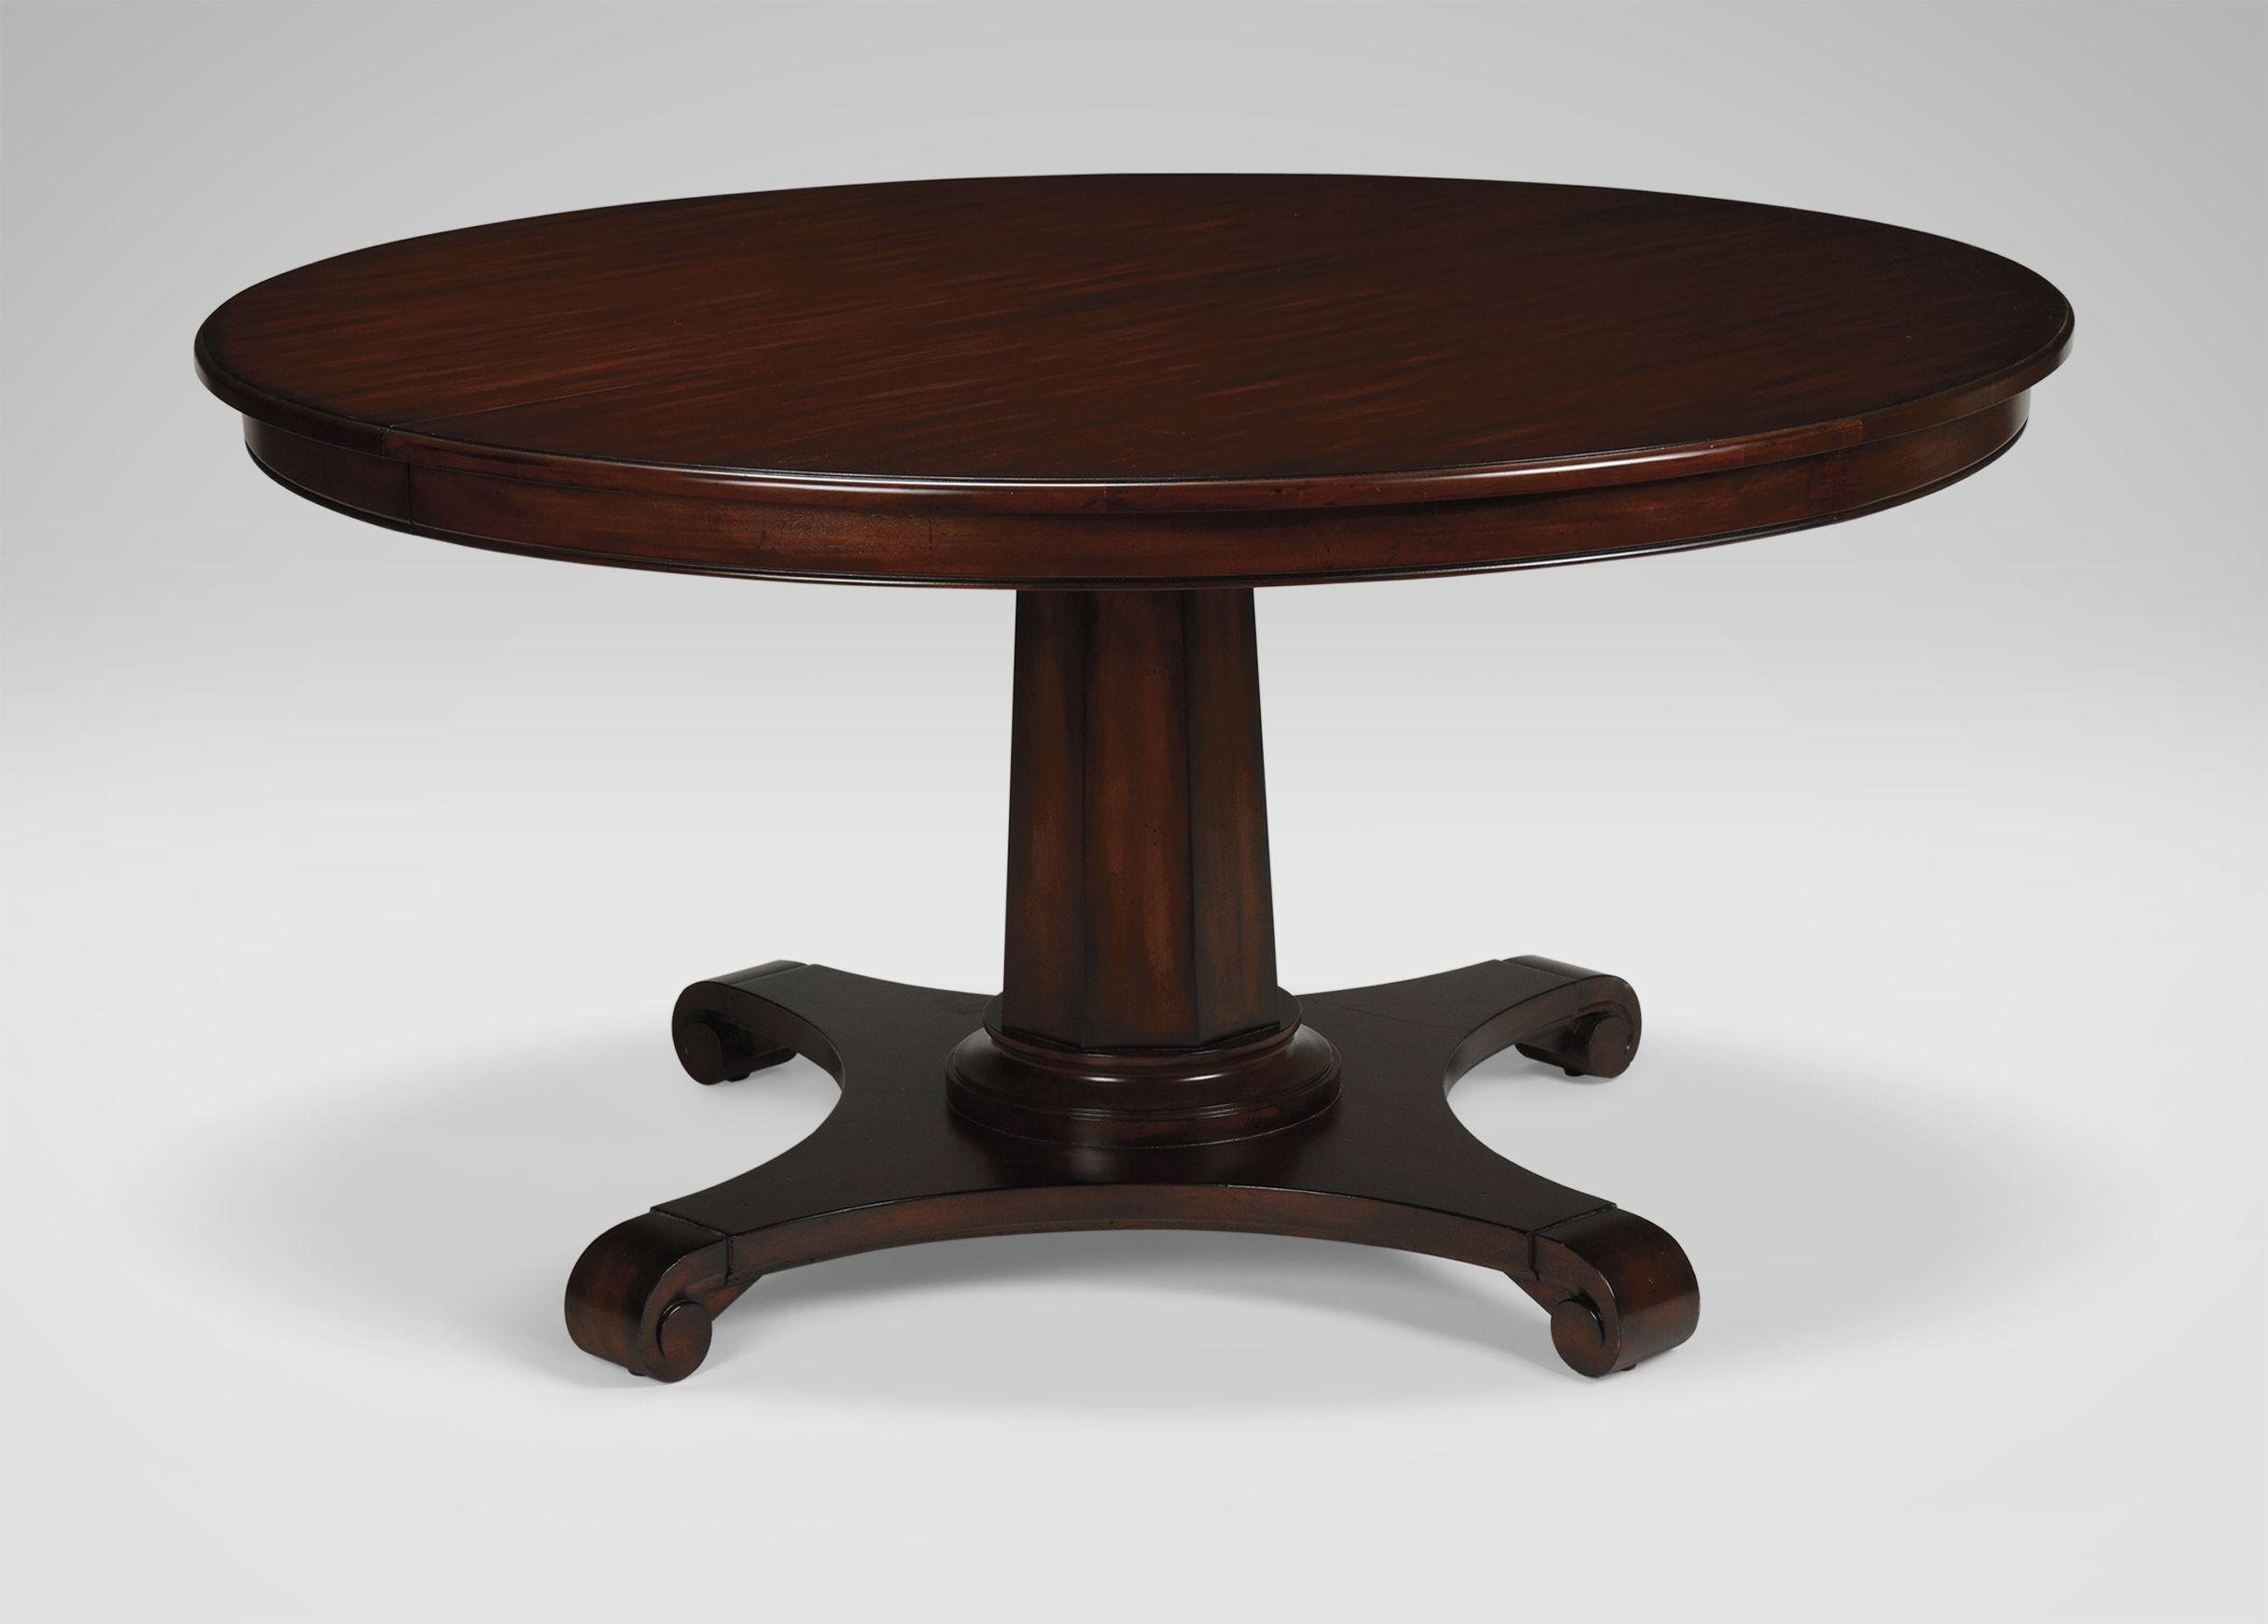 "Sanders Round Dining Table Ethan Allen 58"" Extends To 78 Prepossessing Round Dining Room Tables For Sale Inspiration Design"